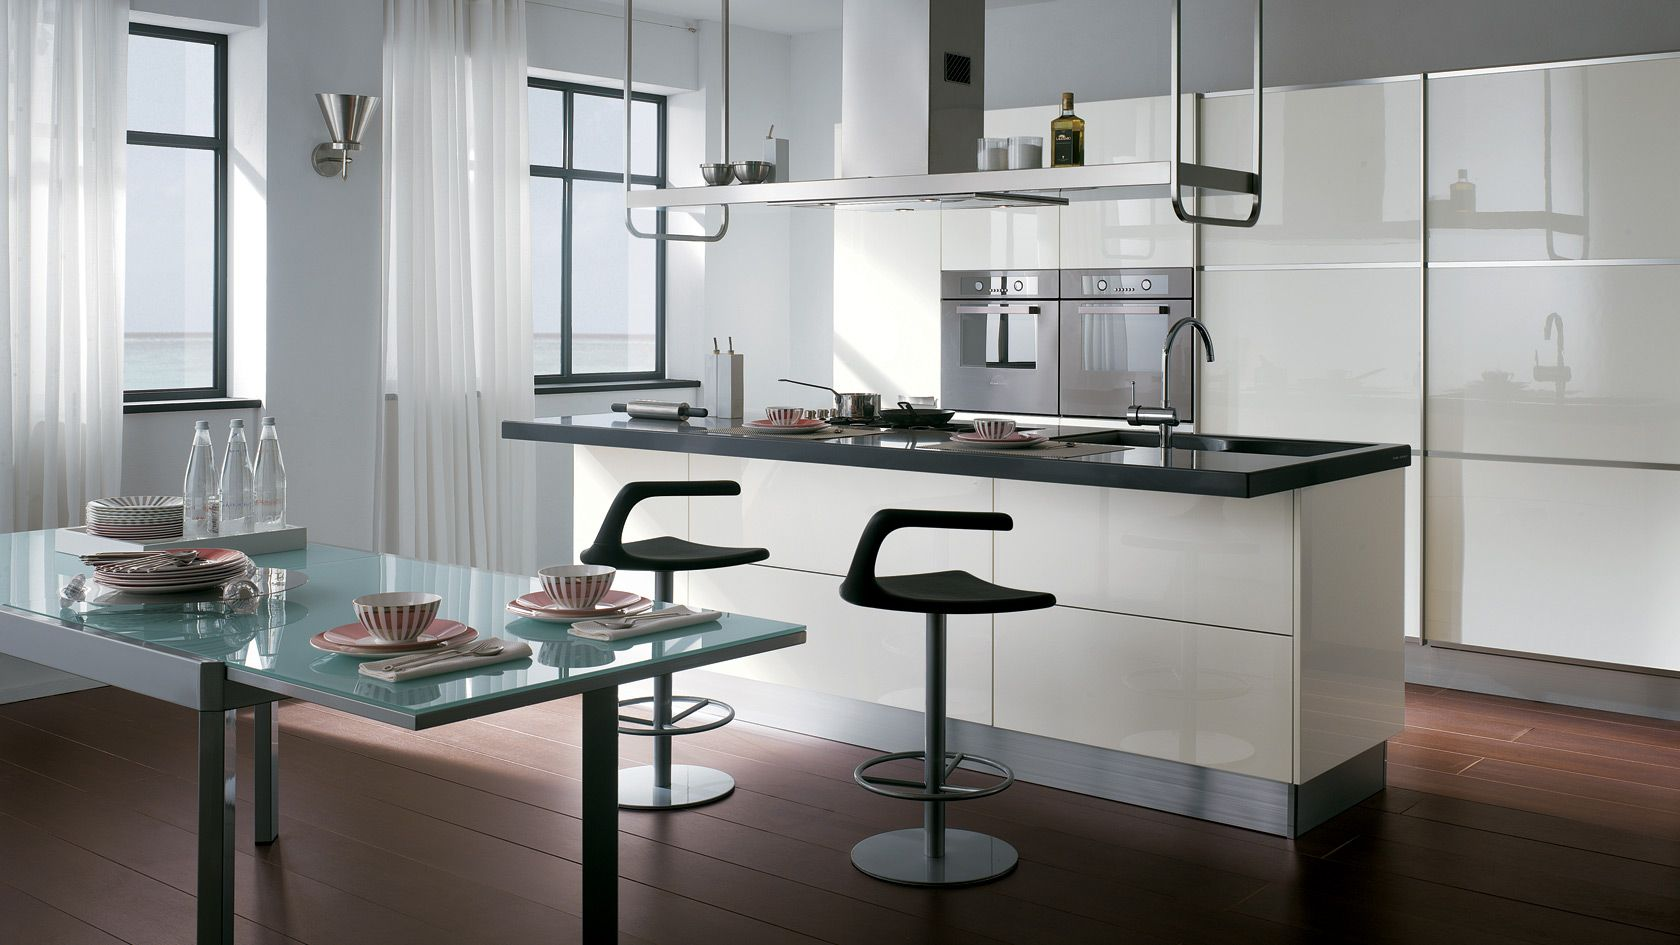 Cucina Mood Scavolini | House Ideas | Pinterest | Cucina and Kitchens